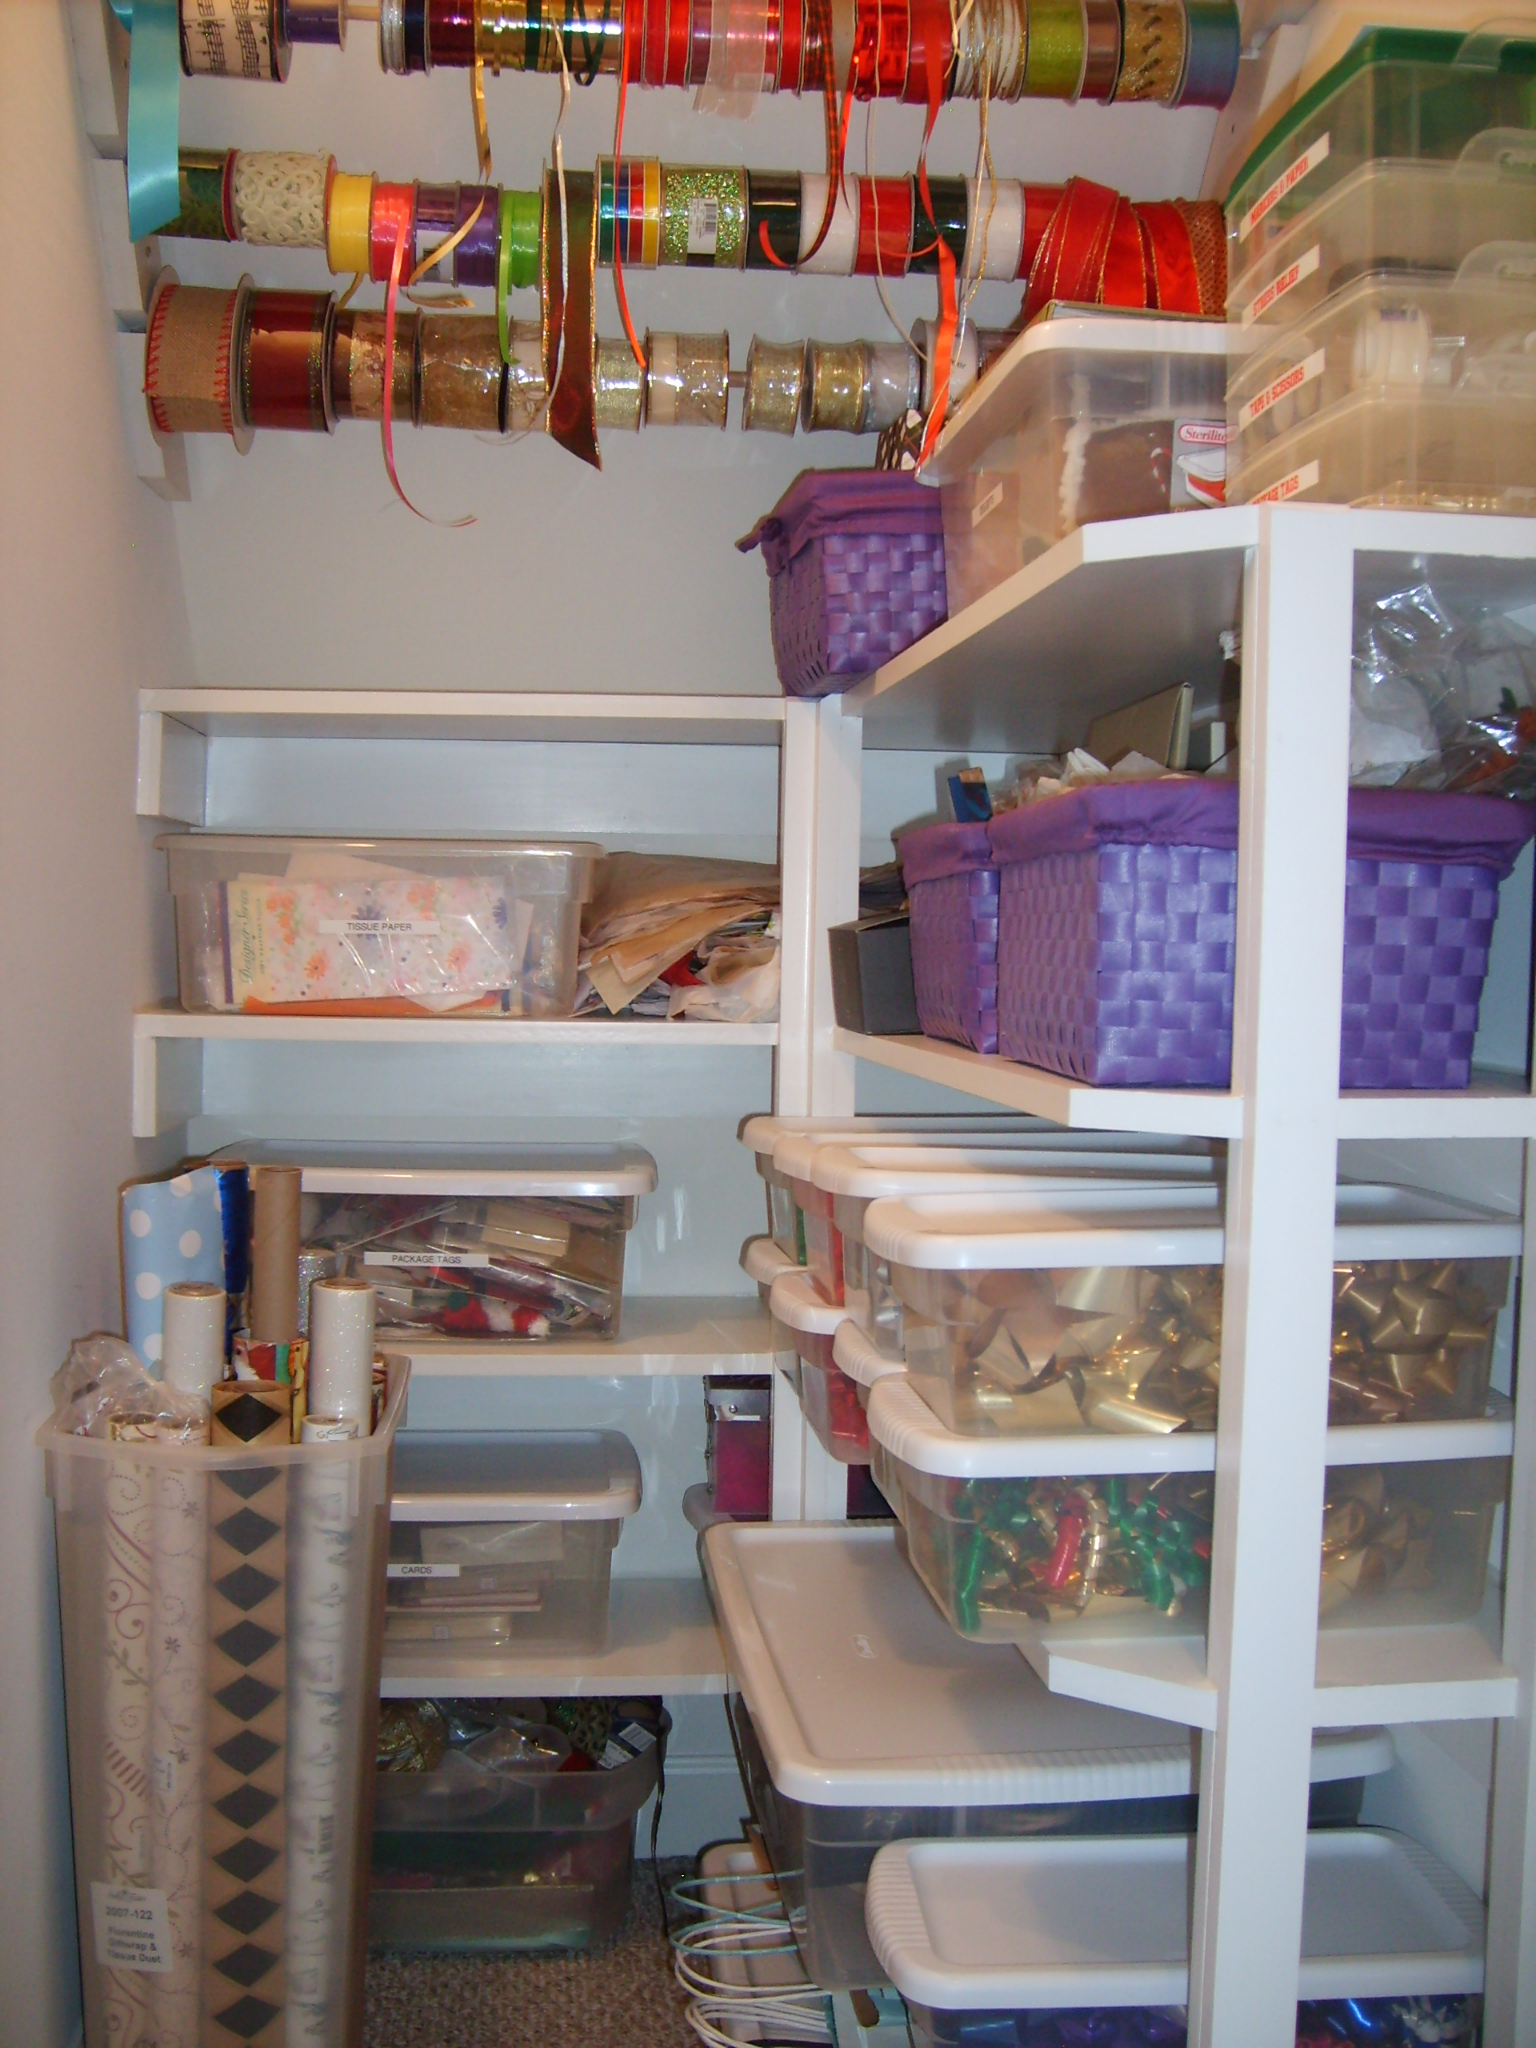 Gift wrap storage ideas - There Is Also Lots Of Shelf Storage For Ready Made Bows Rolls For Gift Wrap Gift Tags Tissue Paper Gift Bags And Boxes Even Some Space For Those